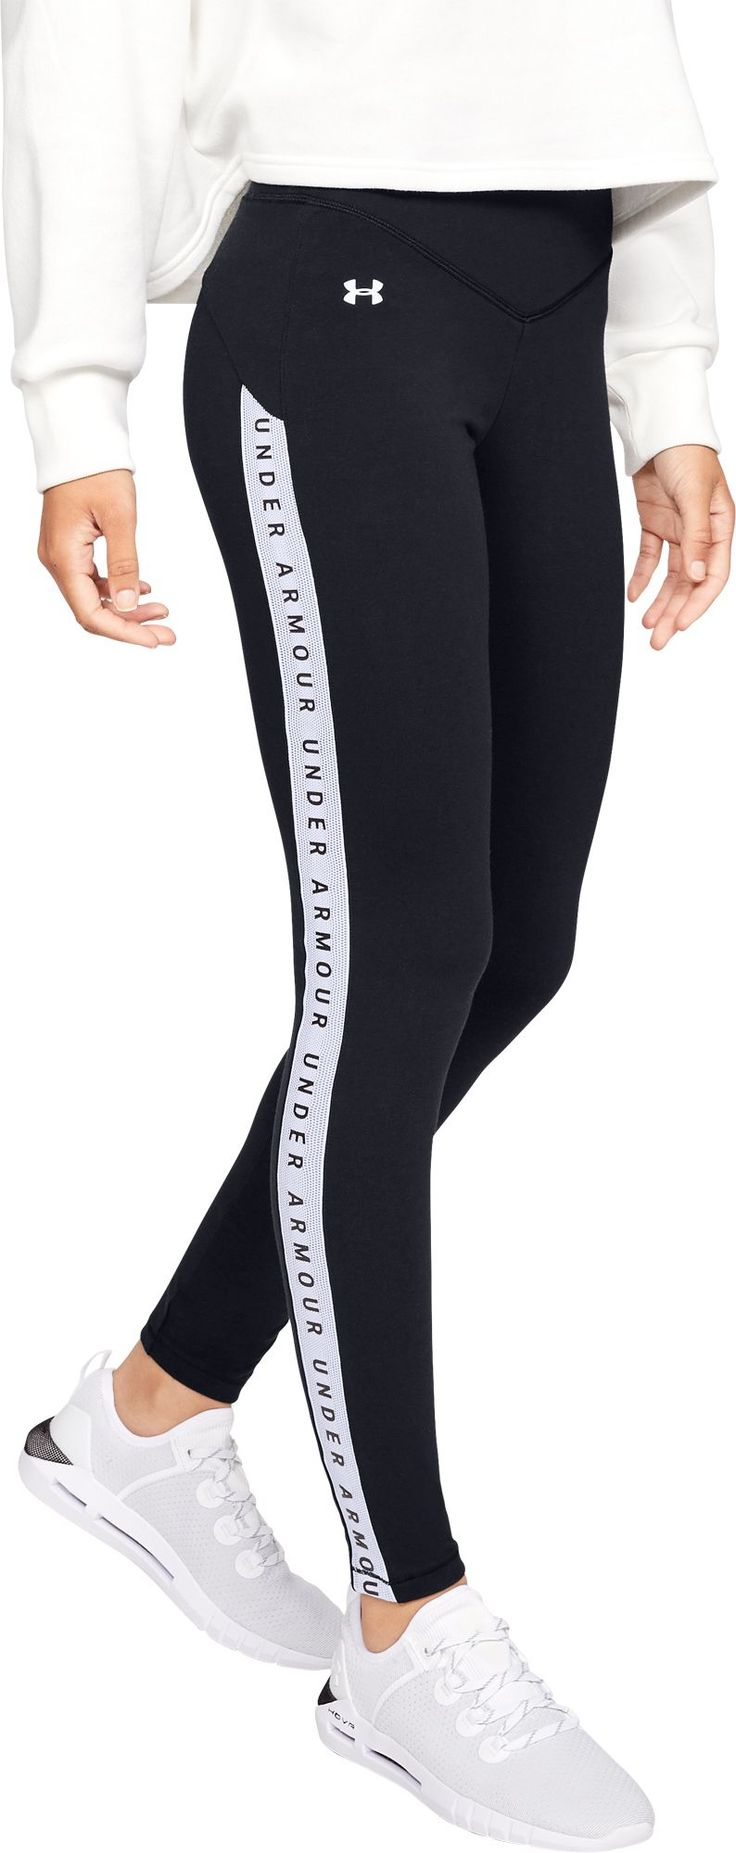 Under Armour Women's Taped Favorite Leggings, Size: XS, Black 7